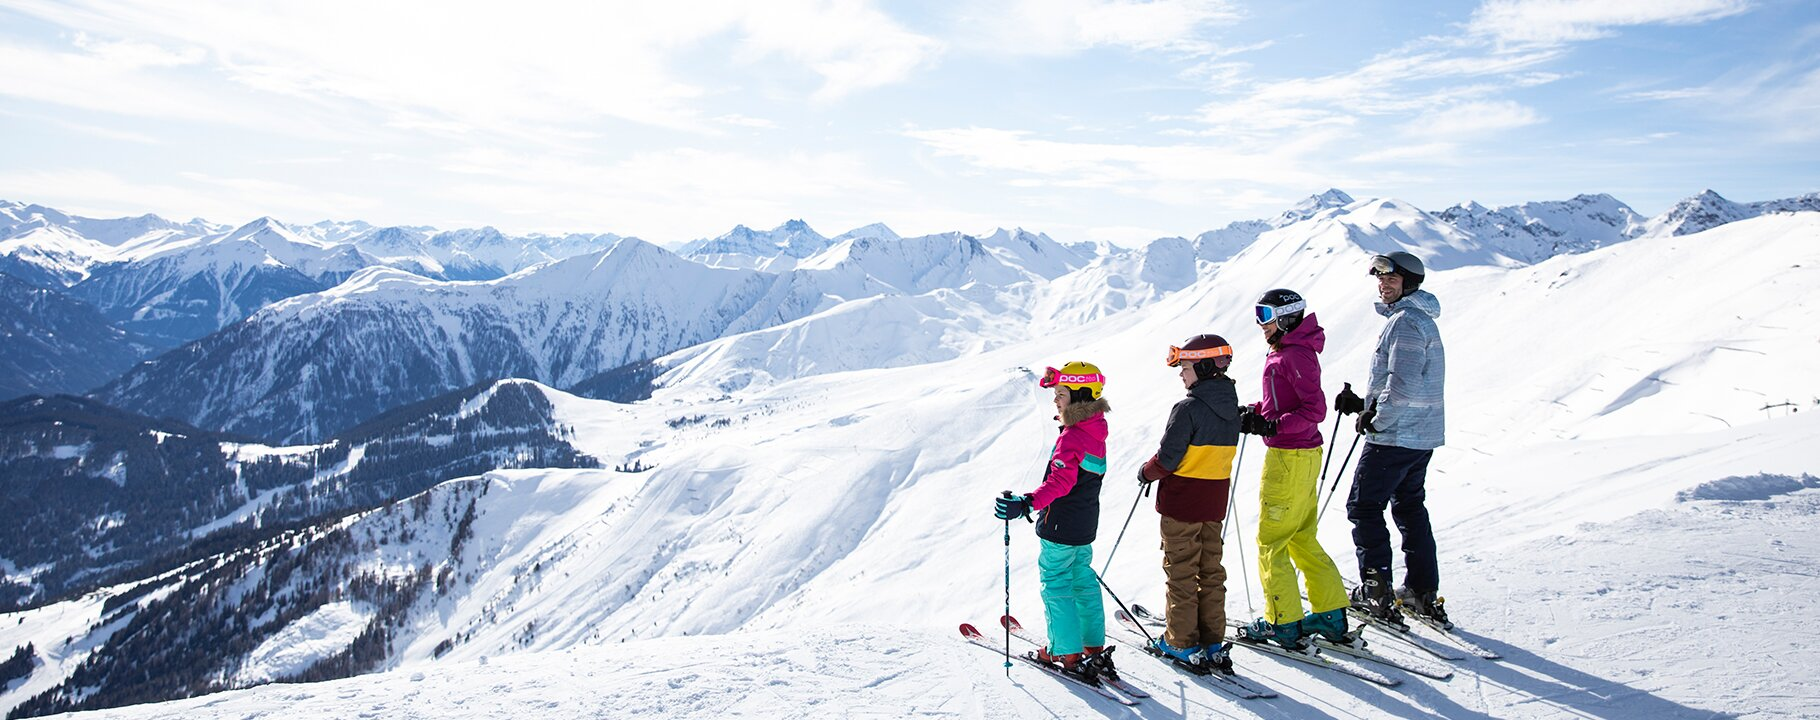 Skiing with the family in Serfaus-Fiss-Ladis in Tyrol Austria | © Serfaus-Fiss-Ladis Marketing GmbH | danielzangerl.com